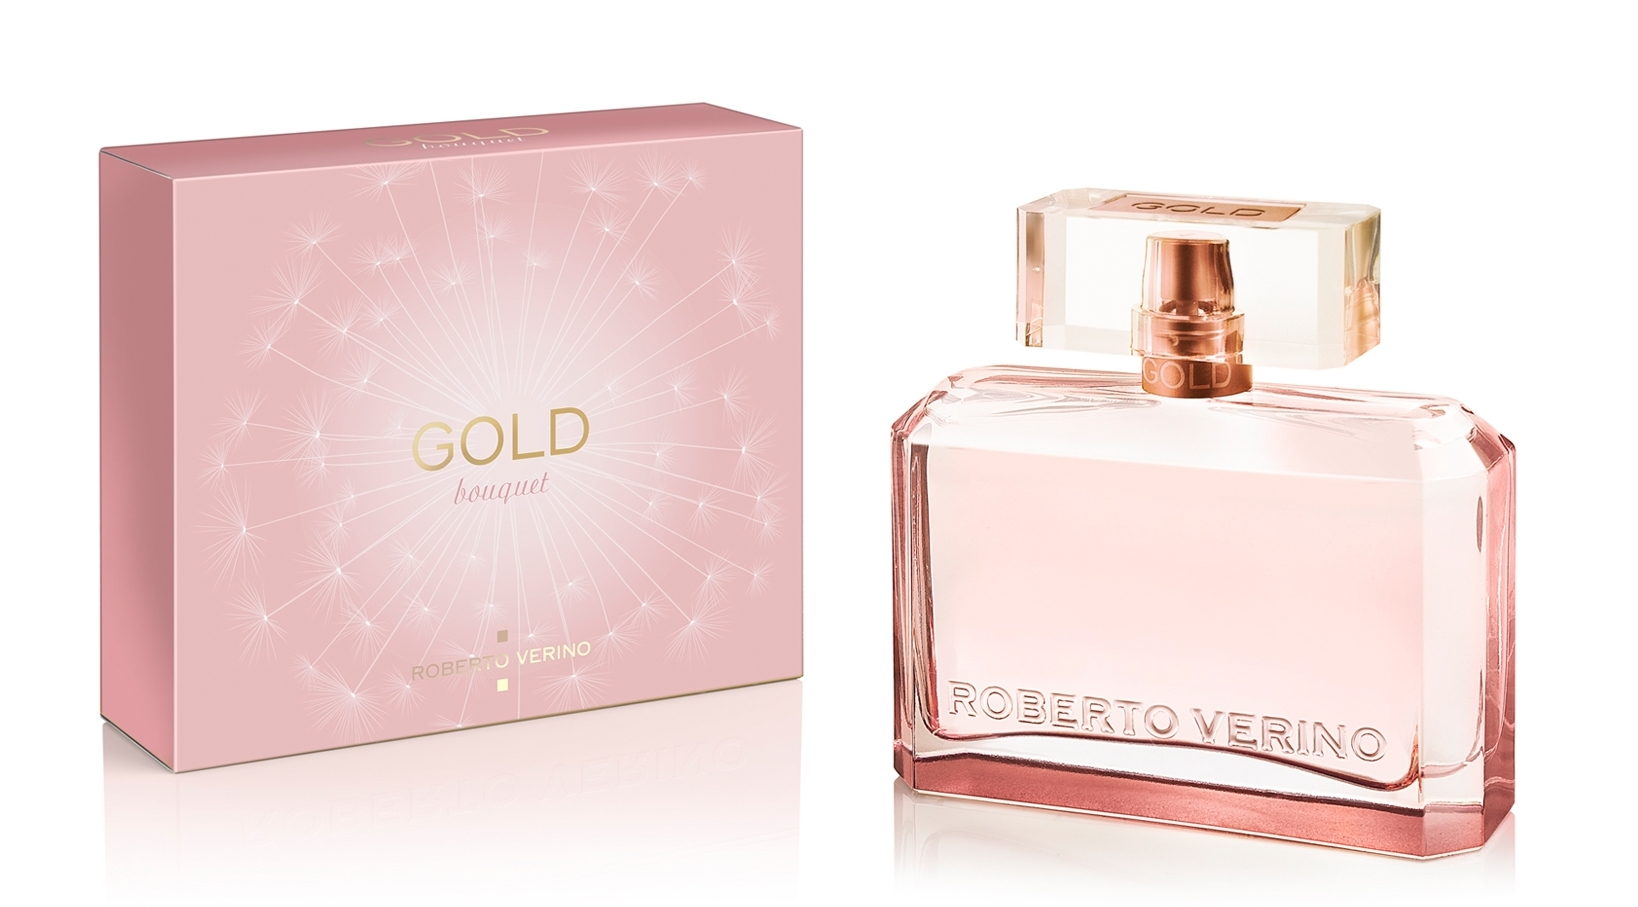 ROBERTO VERINO GOLD BOUQUET EDP 90 ML